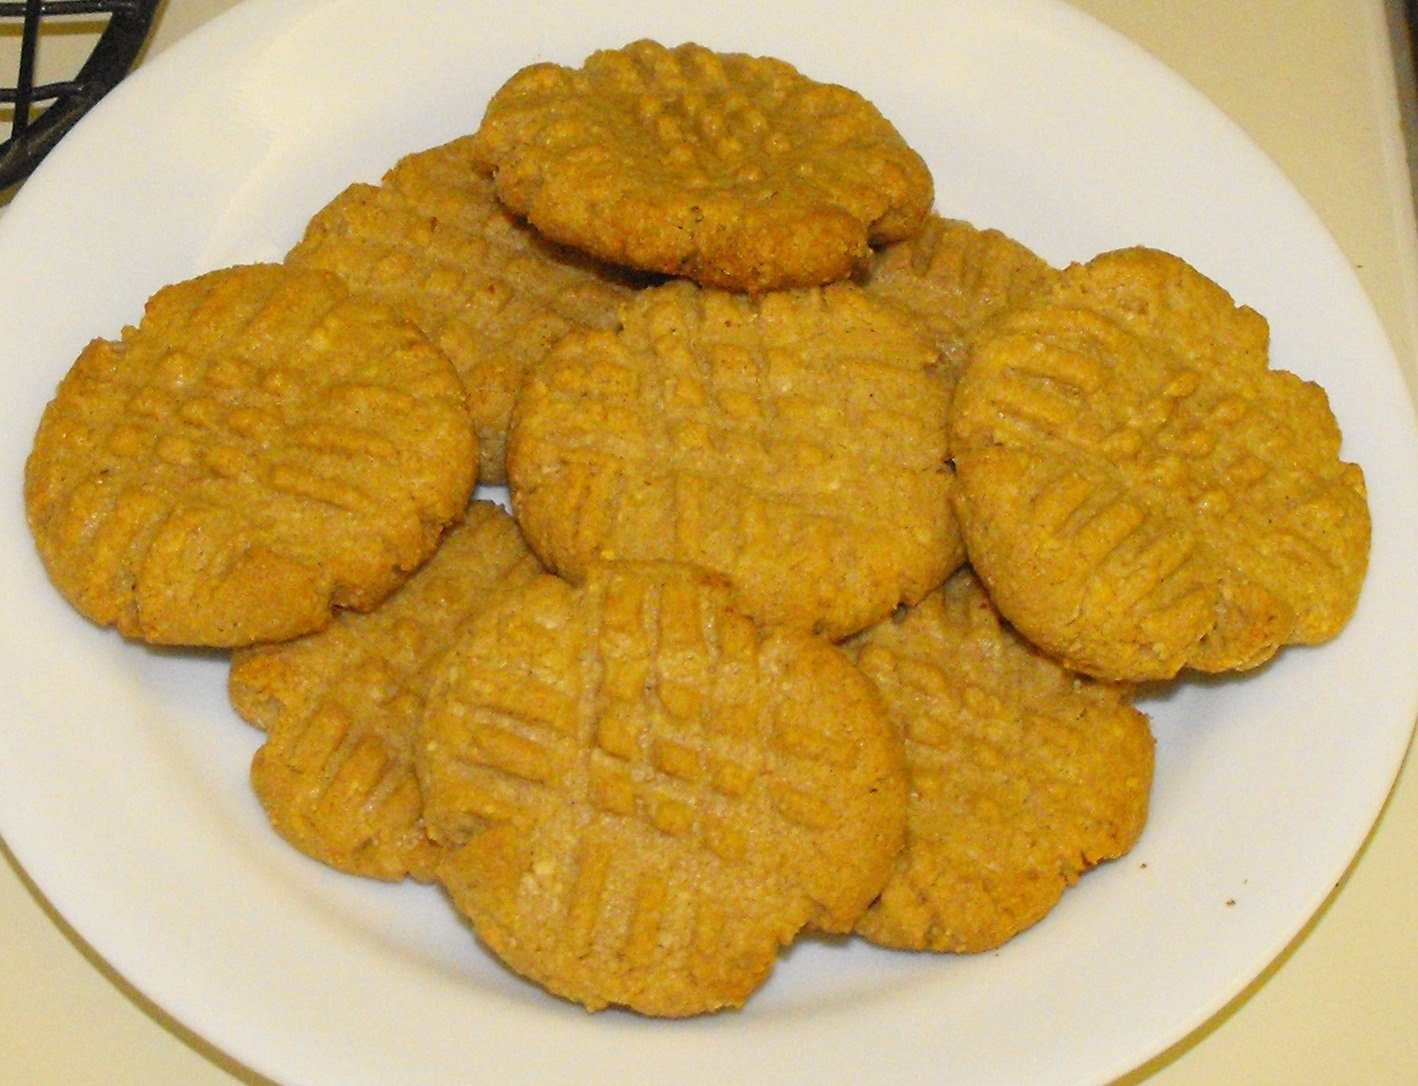 ... of a Southern Kitchen: Sugar Free Sunday--Peanut Butter Cookies